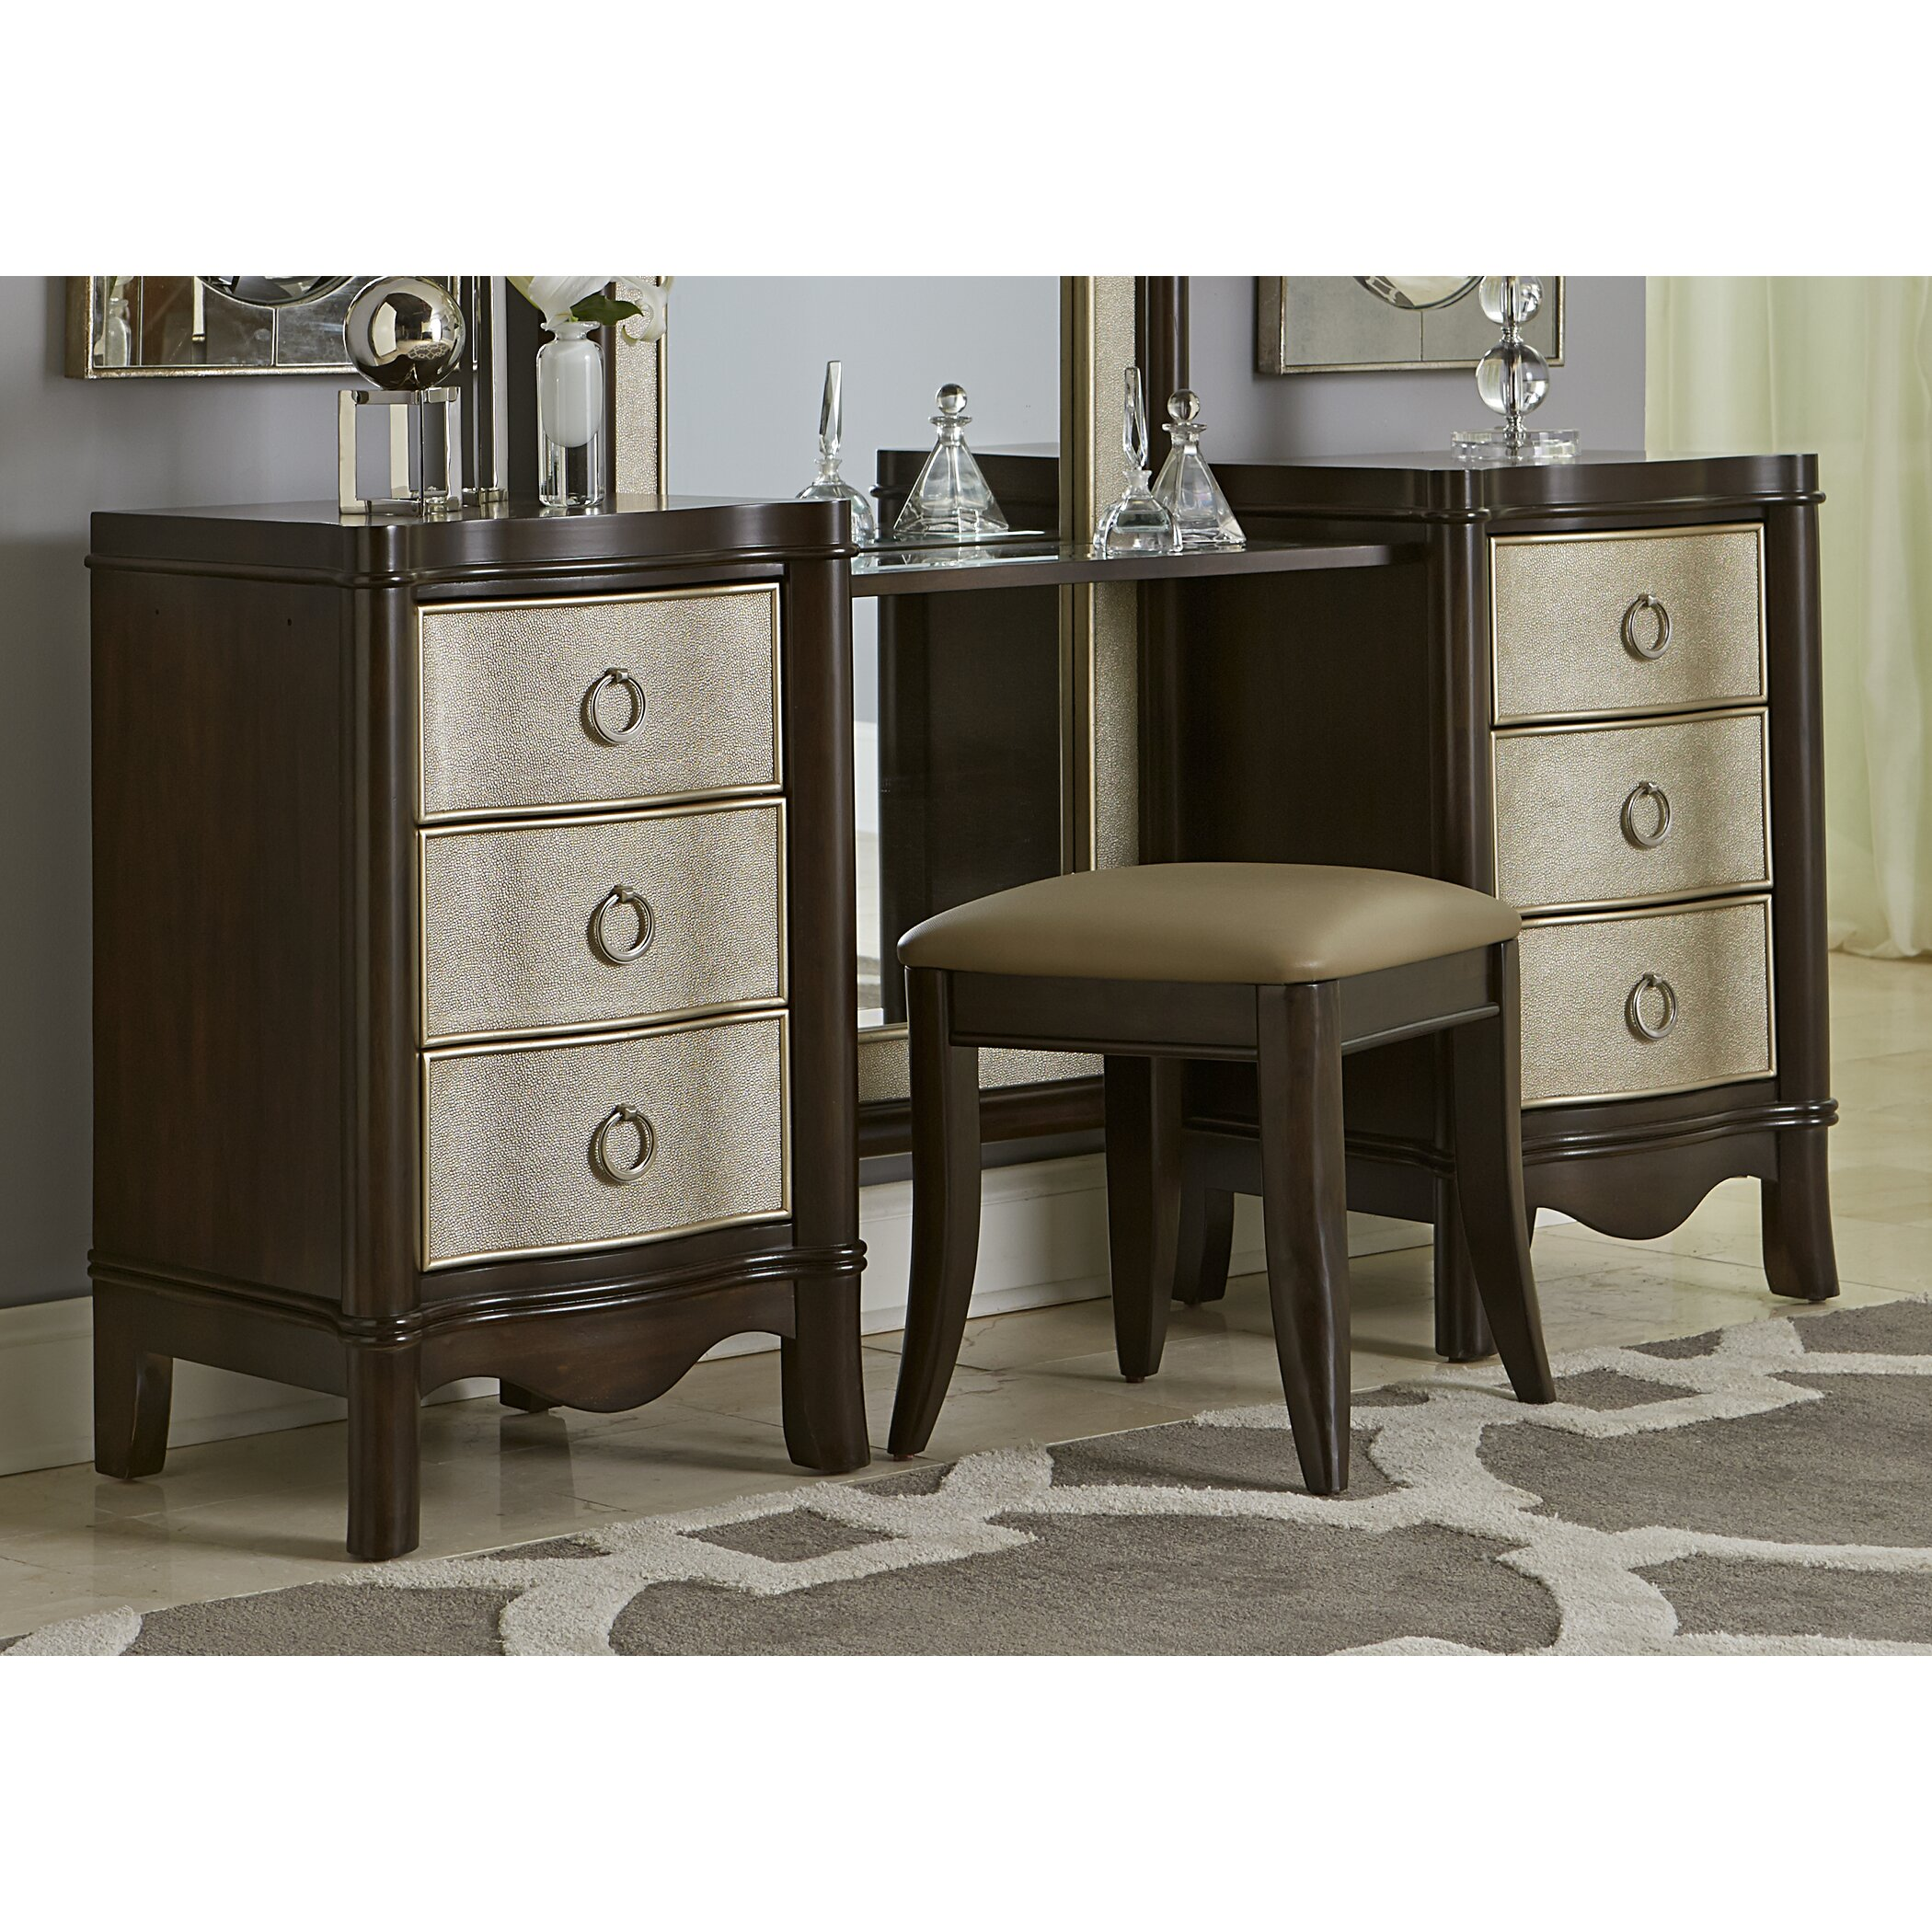 House Of Hampton Hoyt Vanity Drawer Unit & Reviews